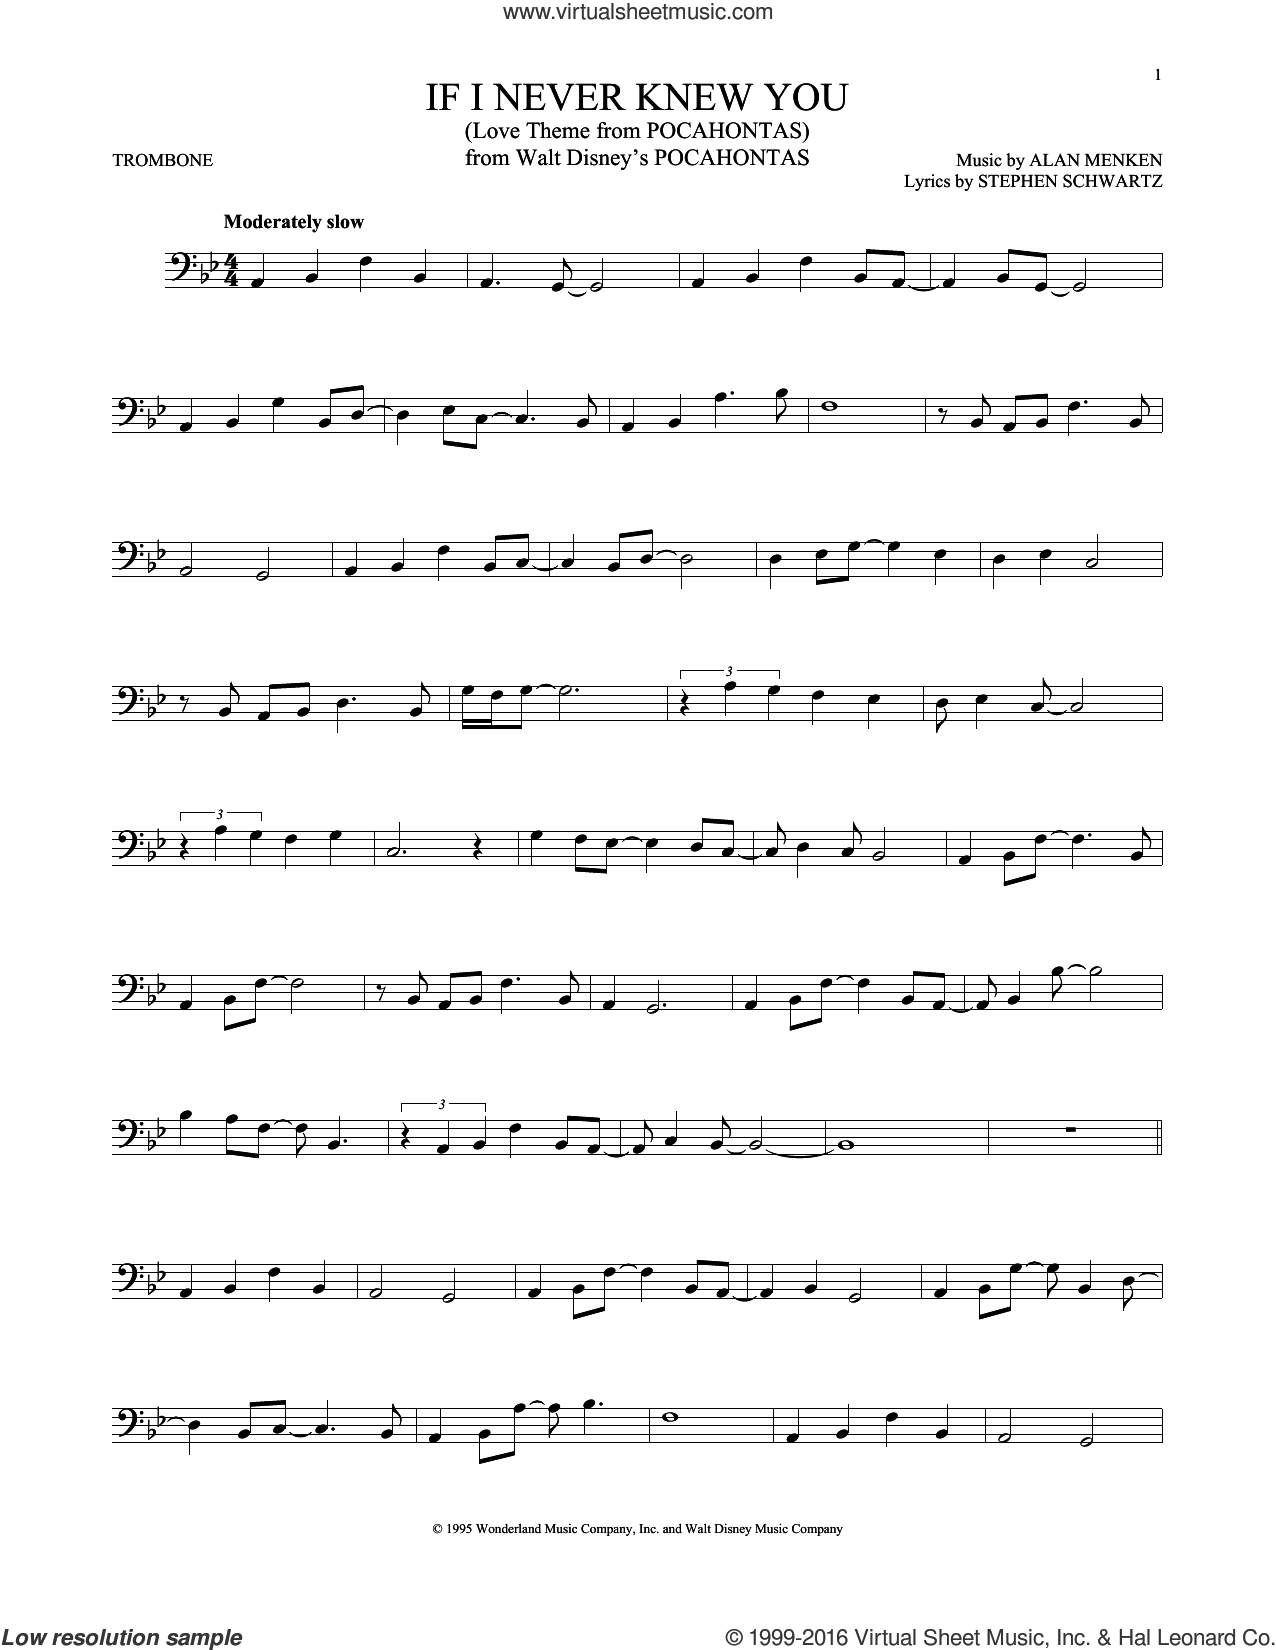 If I Never Knew You (Love Theme from POCAHONTAS) sheet music for trombone solo by Jon Secada and Shanice, Alan Menken and Stephen Schwartz, intermediate skill level